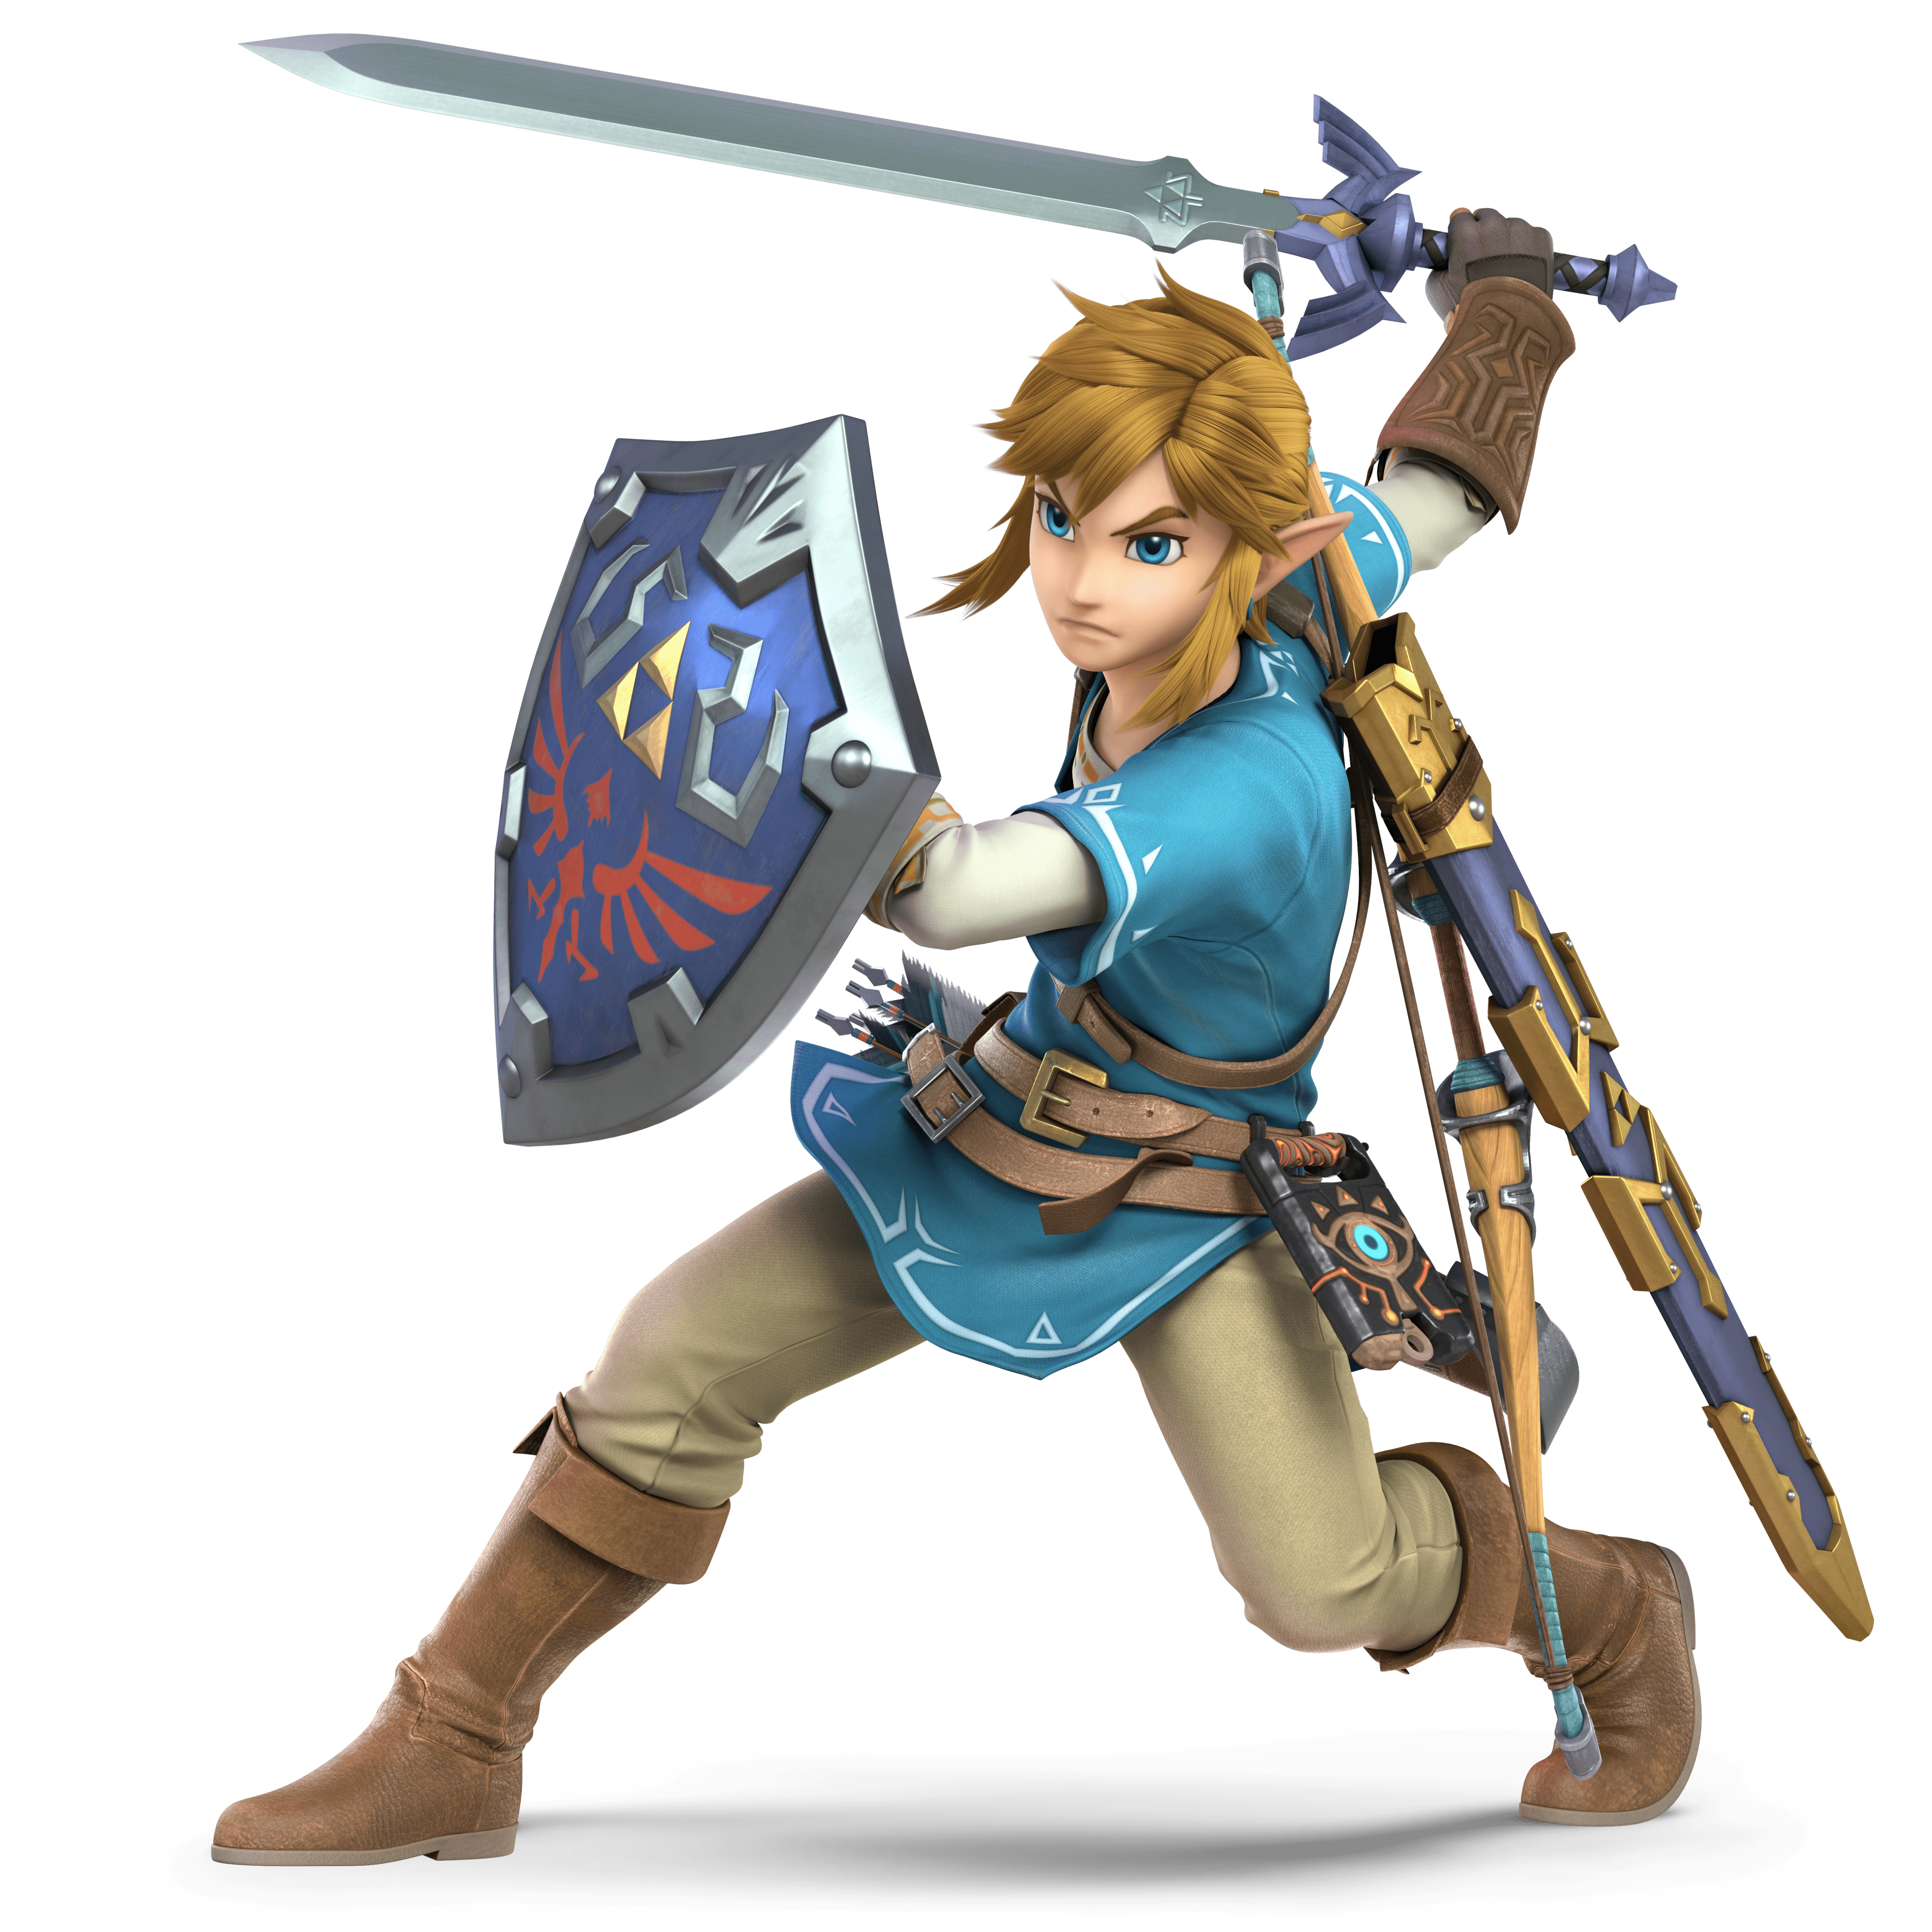 Major Technical Changes To Zelda Characters Movesets In